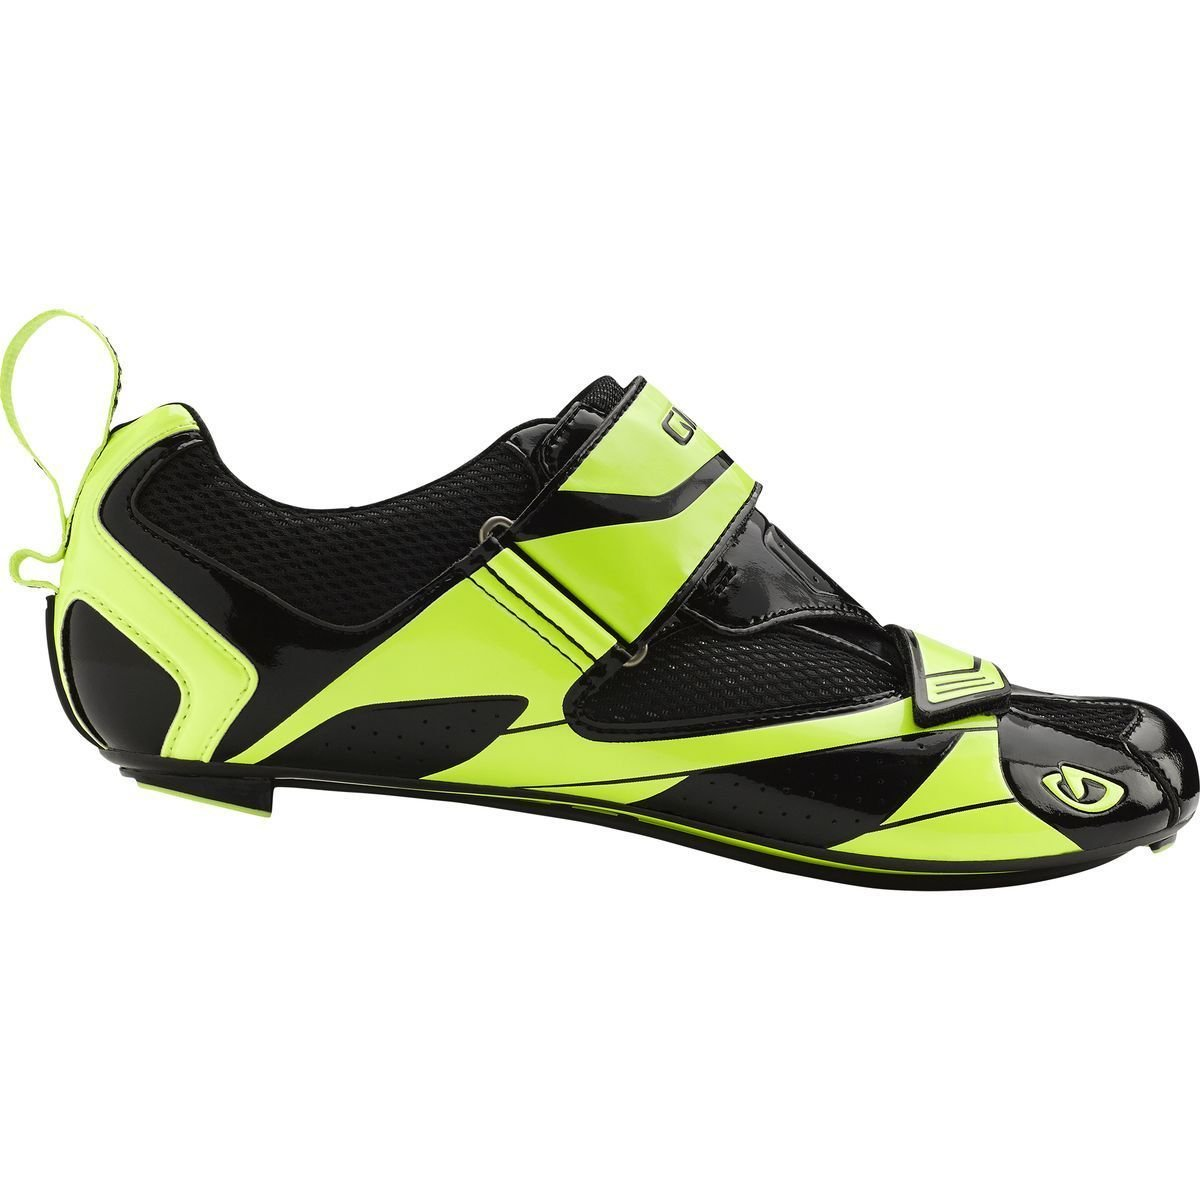 Giro GF20180 Mens Mele Tri Road Shoes, Blk/Hi Yel - 39